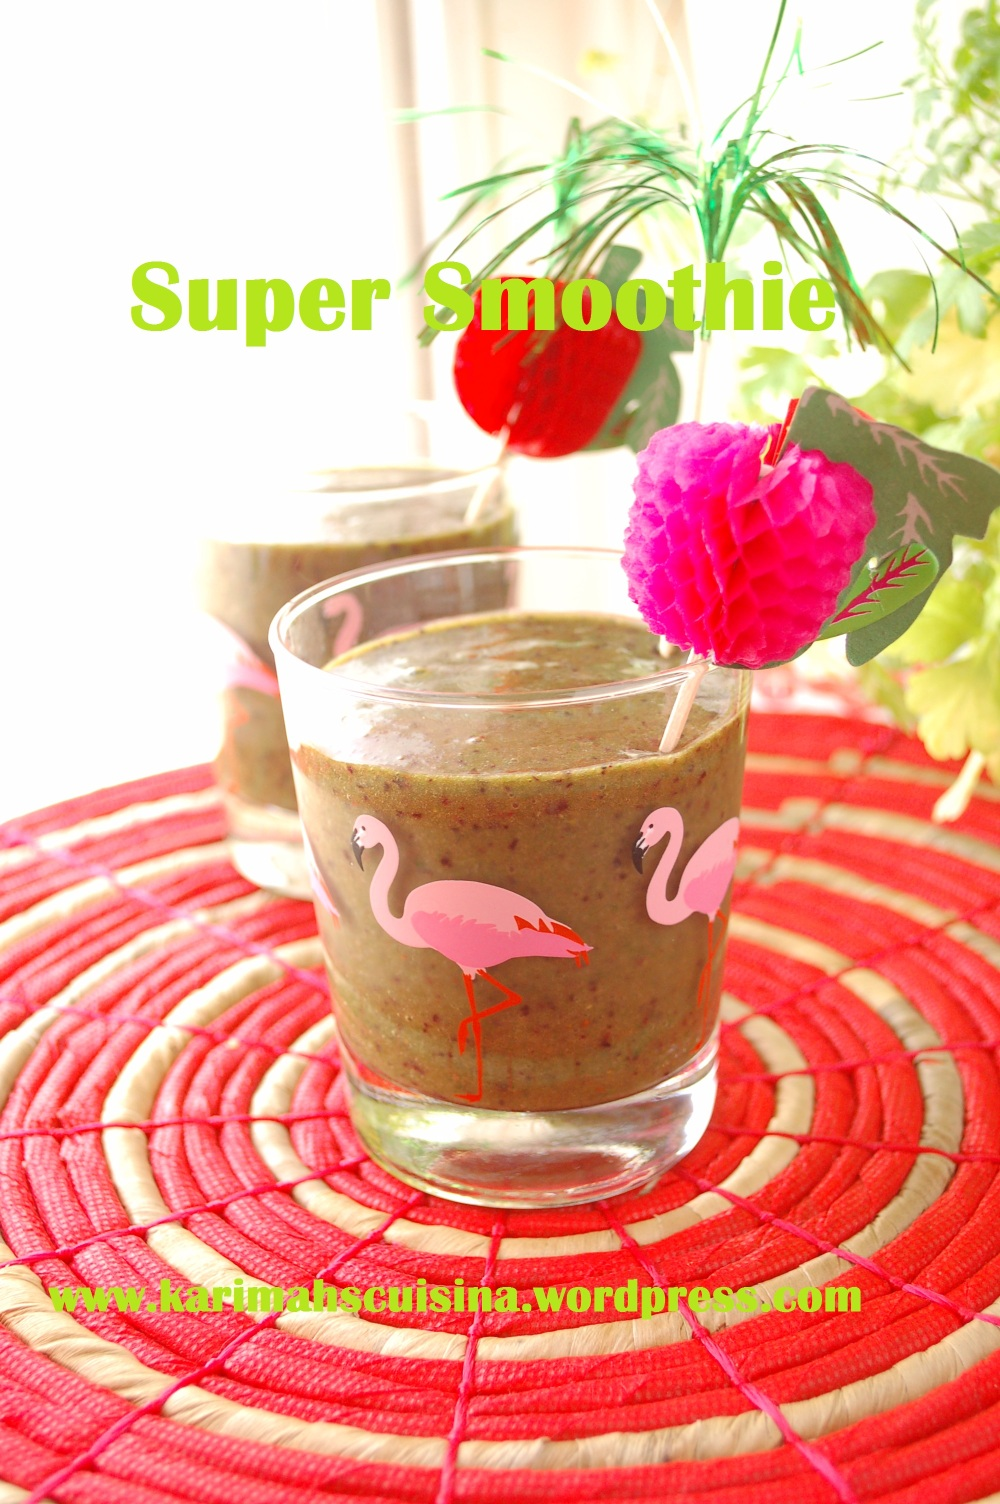 Super Smoothie Blackcurrant